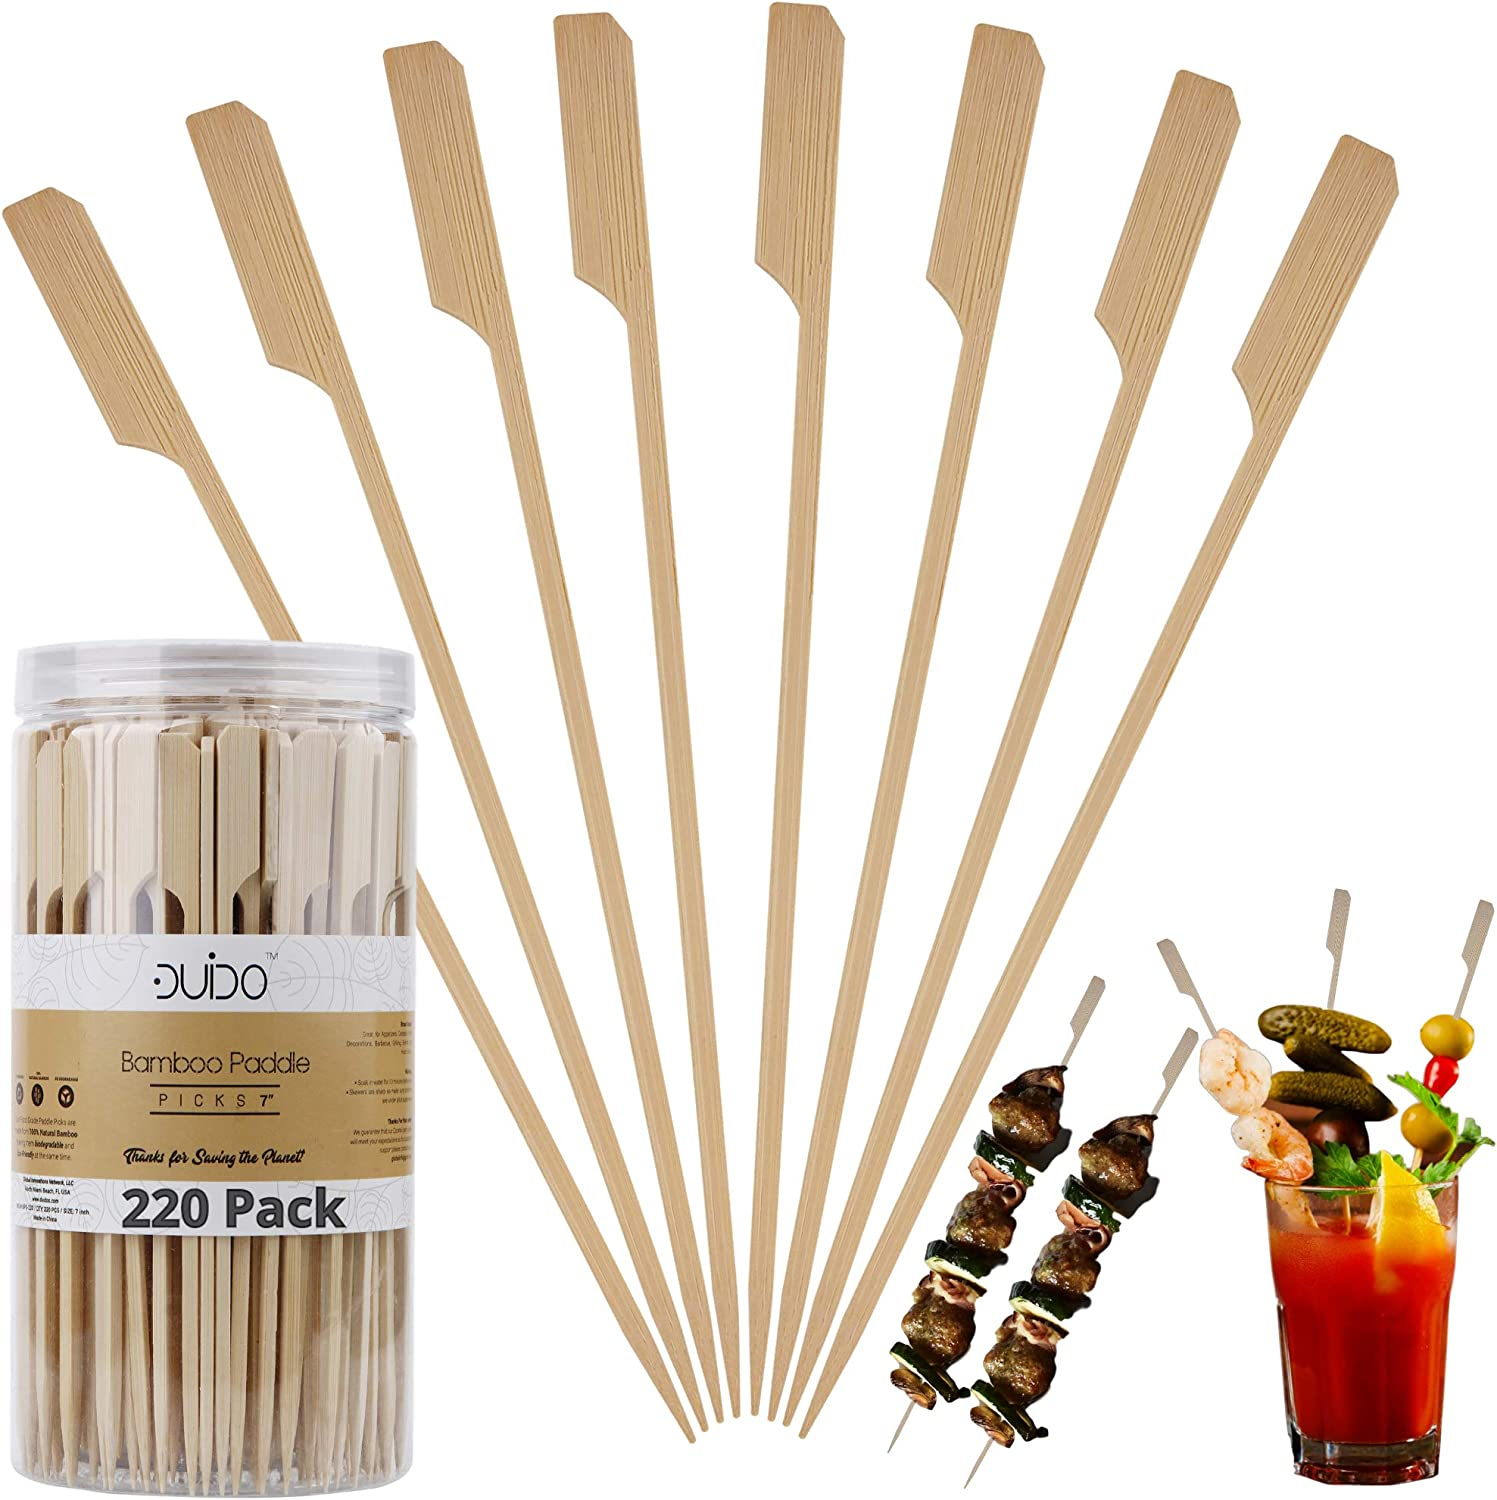 Bamboo Skewers Paddle Wooden Sticks – (220 Pack / 7 Inch) Eco Friendly Grill Skewers for BBQ/Barbecue Kebab Appetizers Fruit Kabob Fondue Satay Chocolate Fountain – Natural Long Toothpicks Kabob